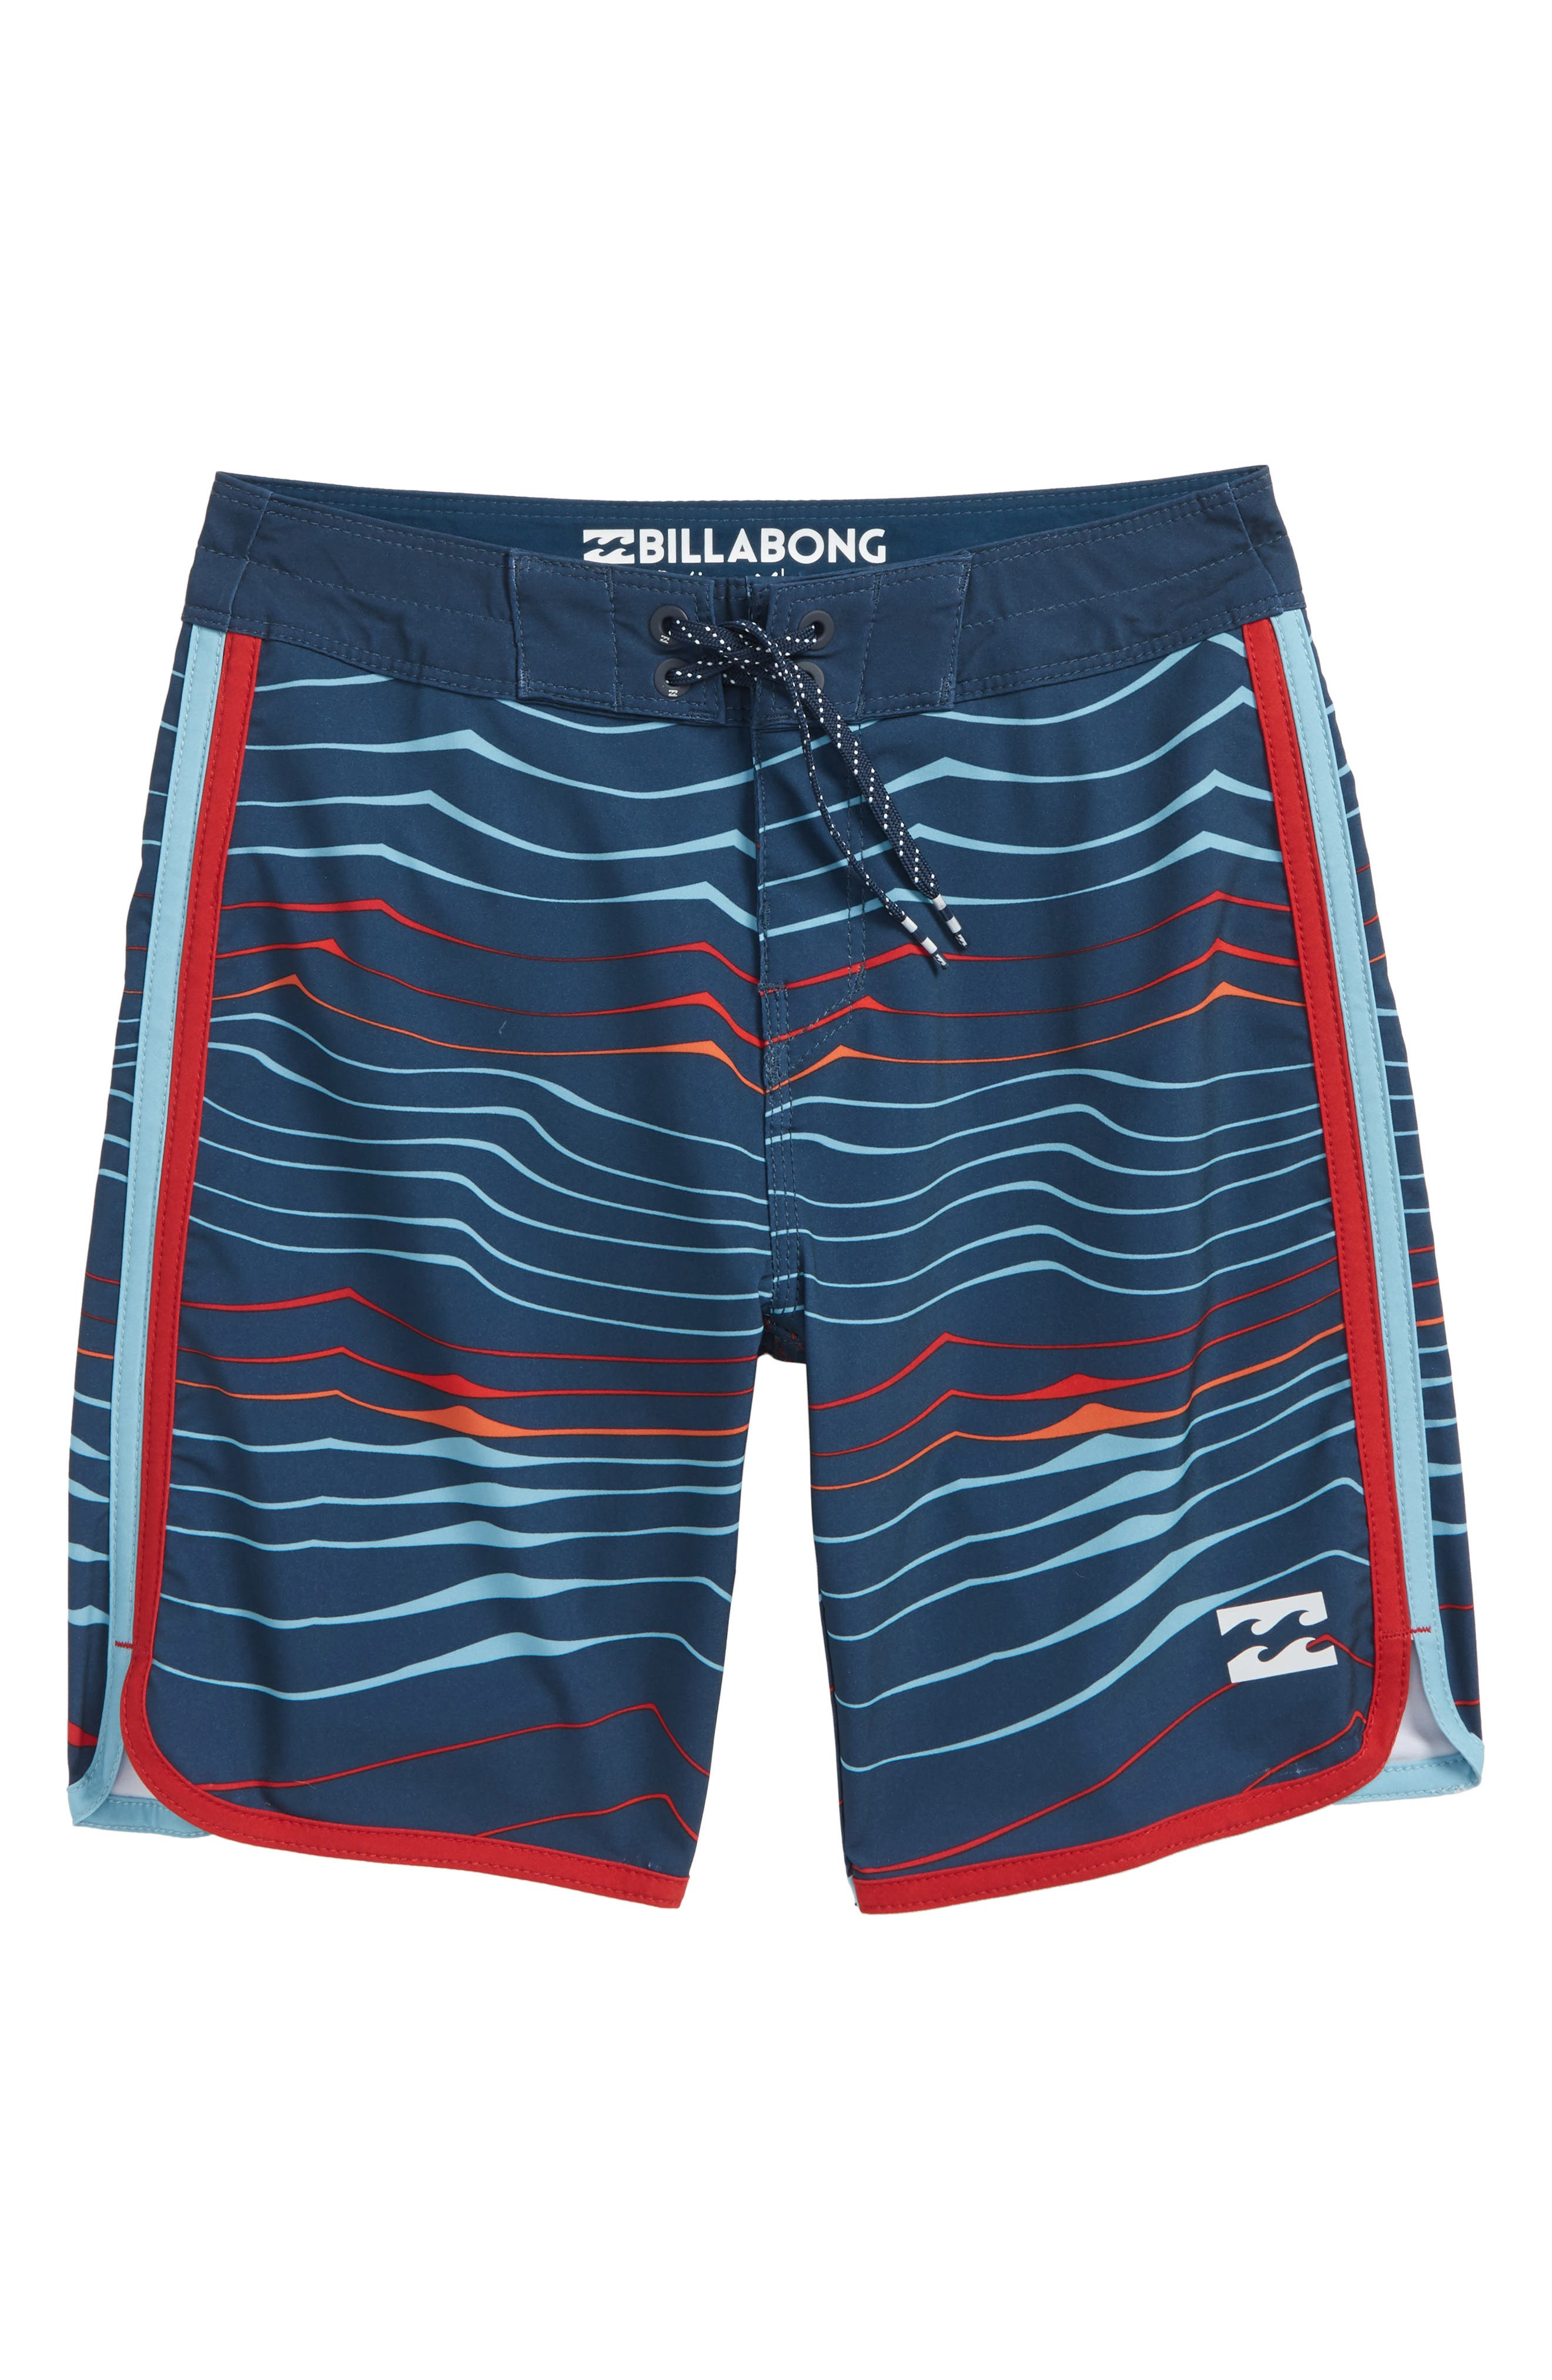 73 X Line Up Board Shorts,                             Main thumbnail 1, color,                             415